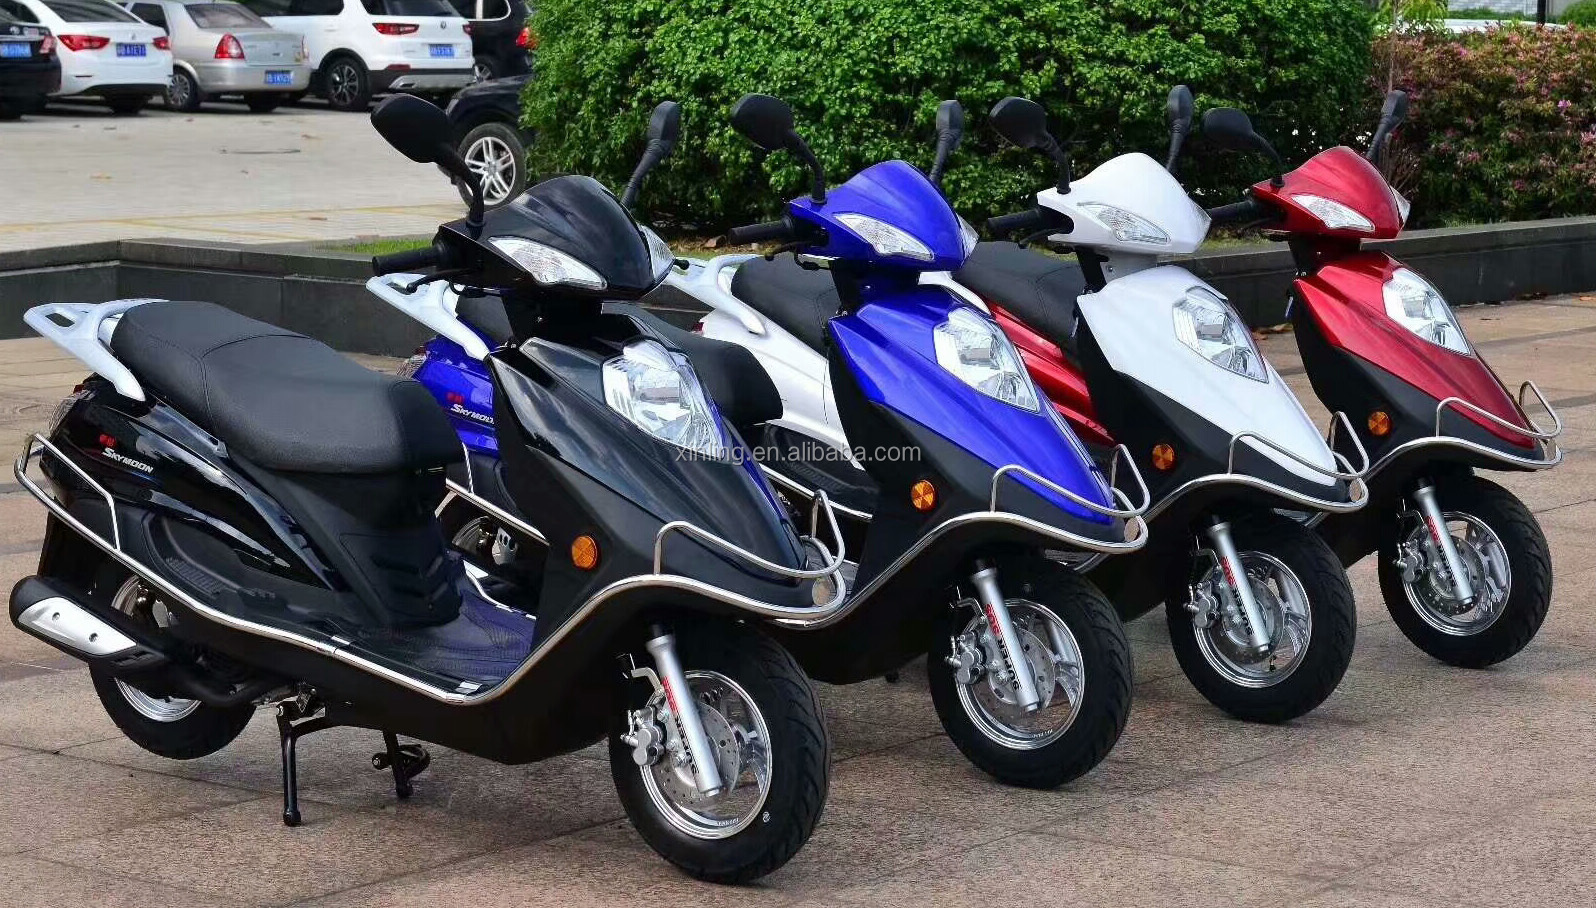 2018 Hot sale high power 125cc 150cc gas scooter with disc brake for wholesale